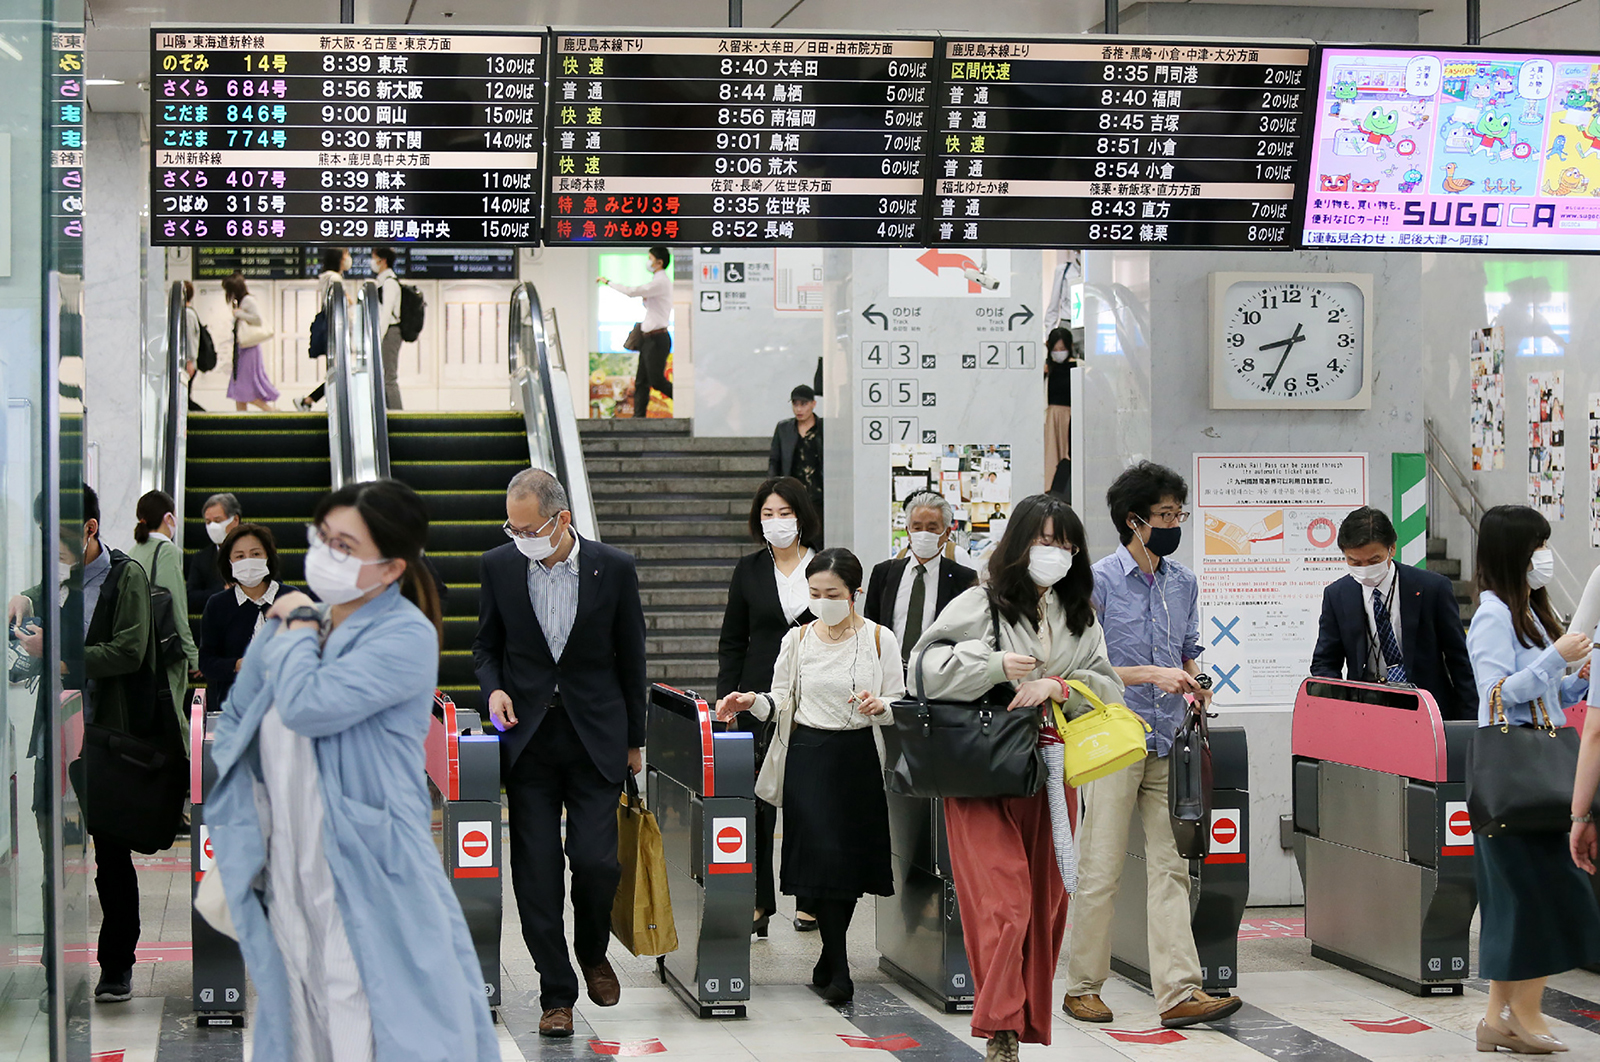 Commuters wearing face masks, walk through ticket gates at a train station in Fukuoka, Japan on May 15.